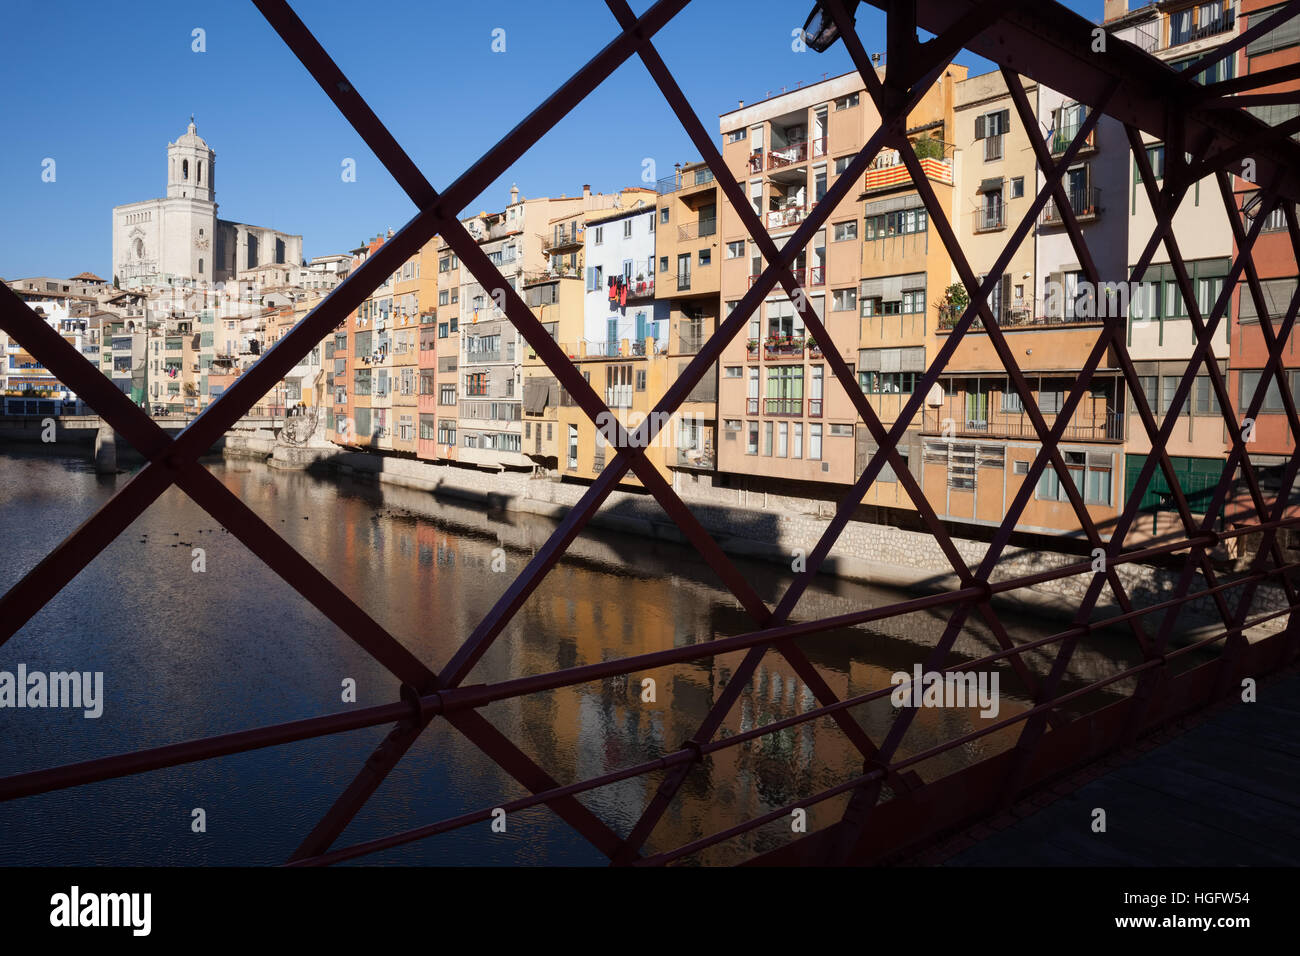 Spain, Catalonia, Girona, Old Town houses along the Onyar River, view through the Eiffel Bridge, abstract urban - Stock Image